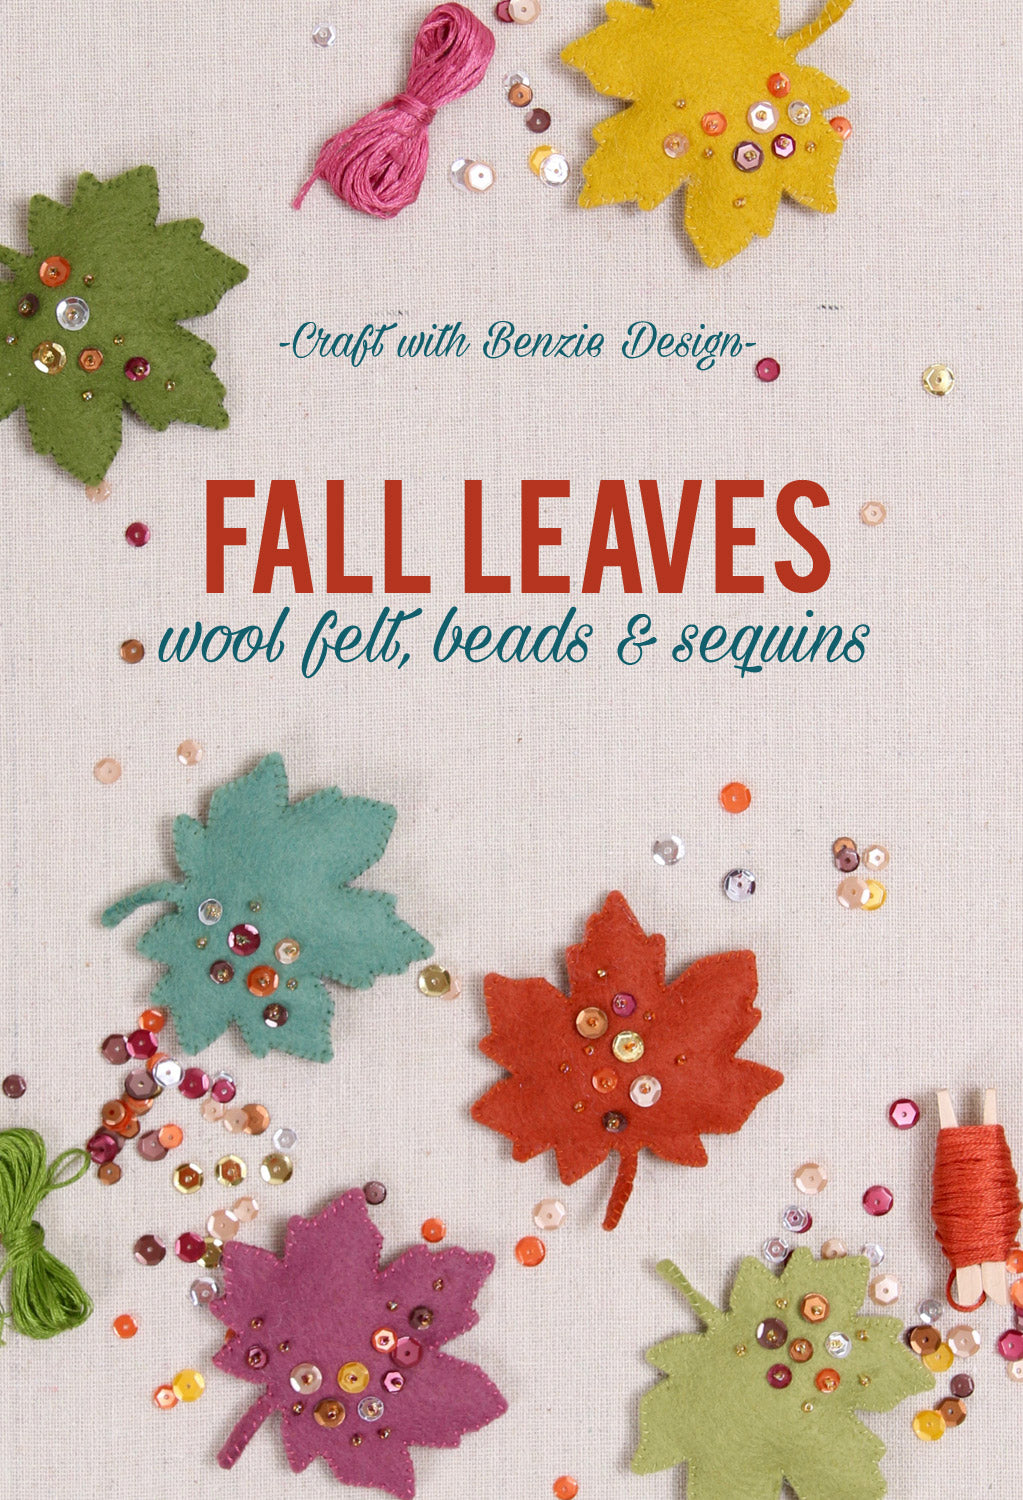 How to sew felt leaves